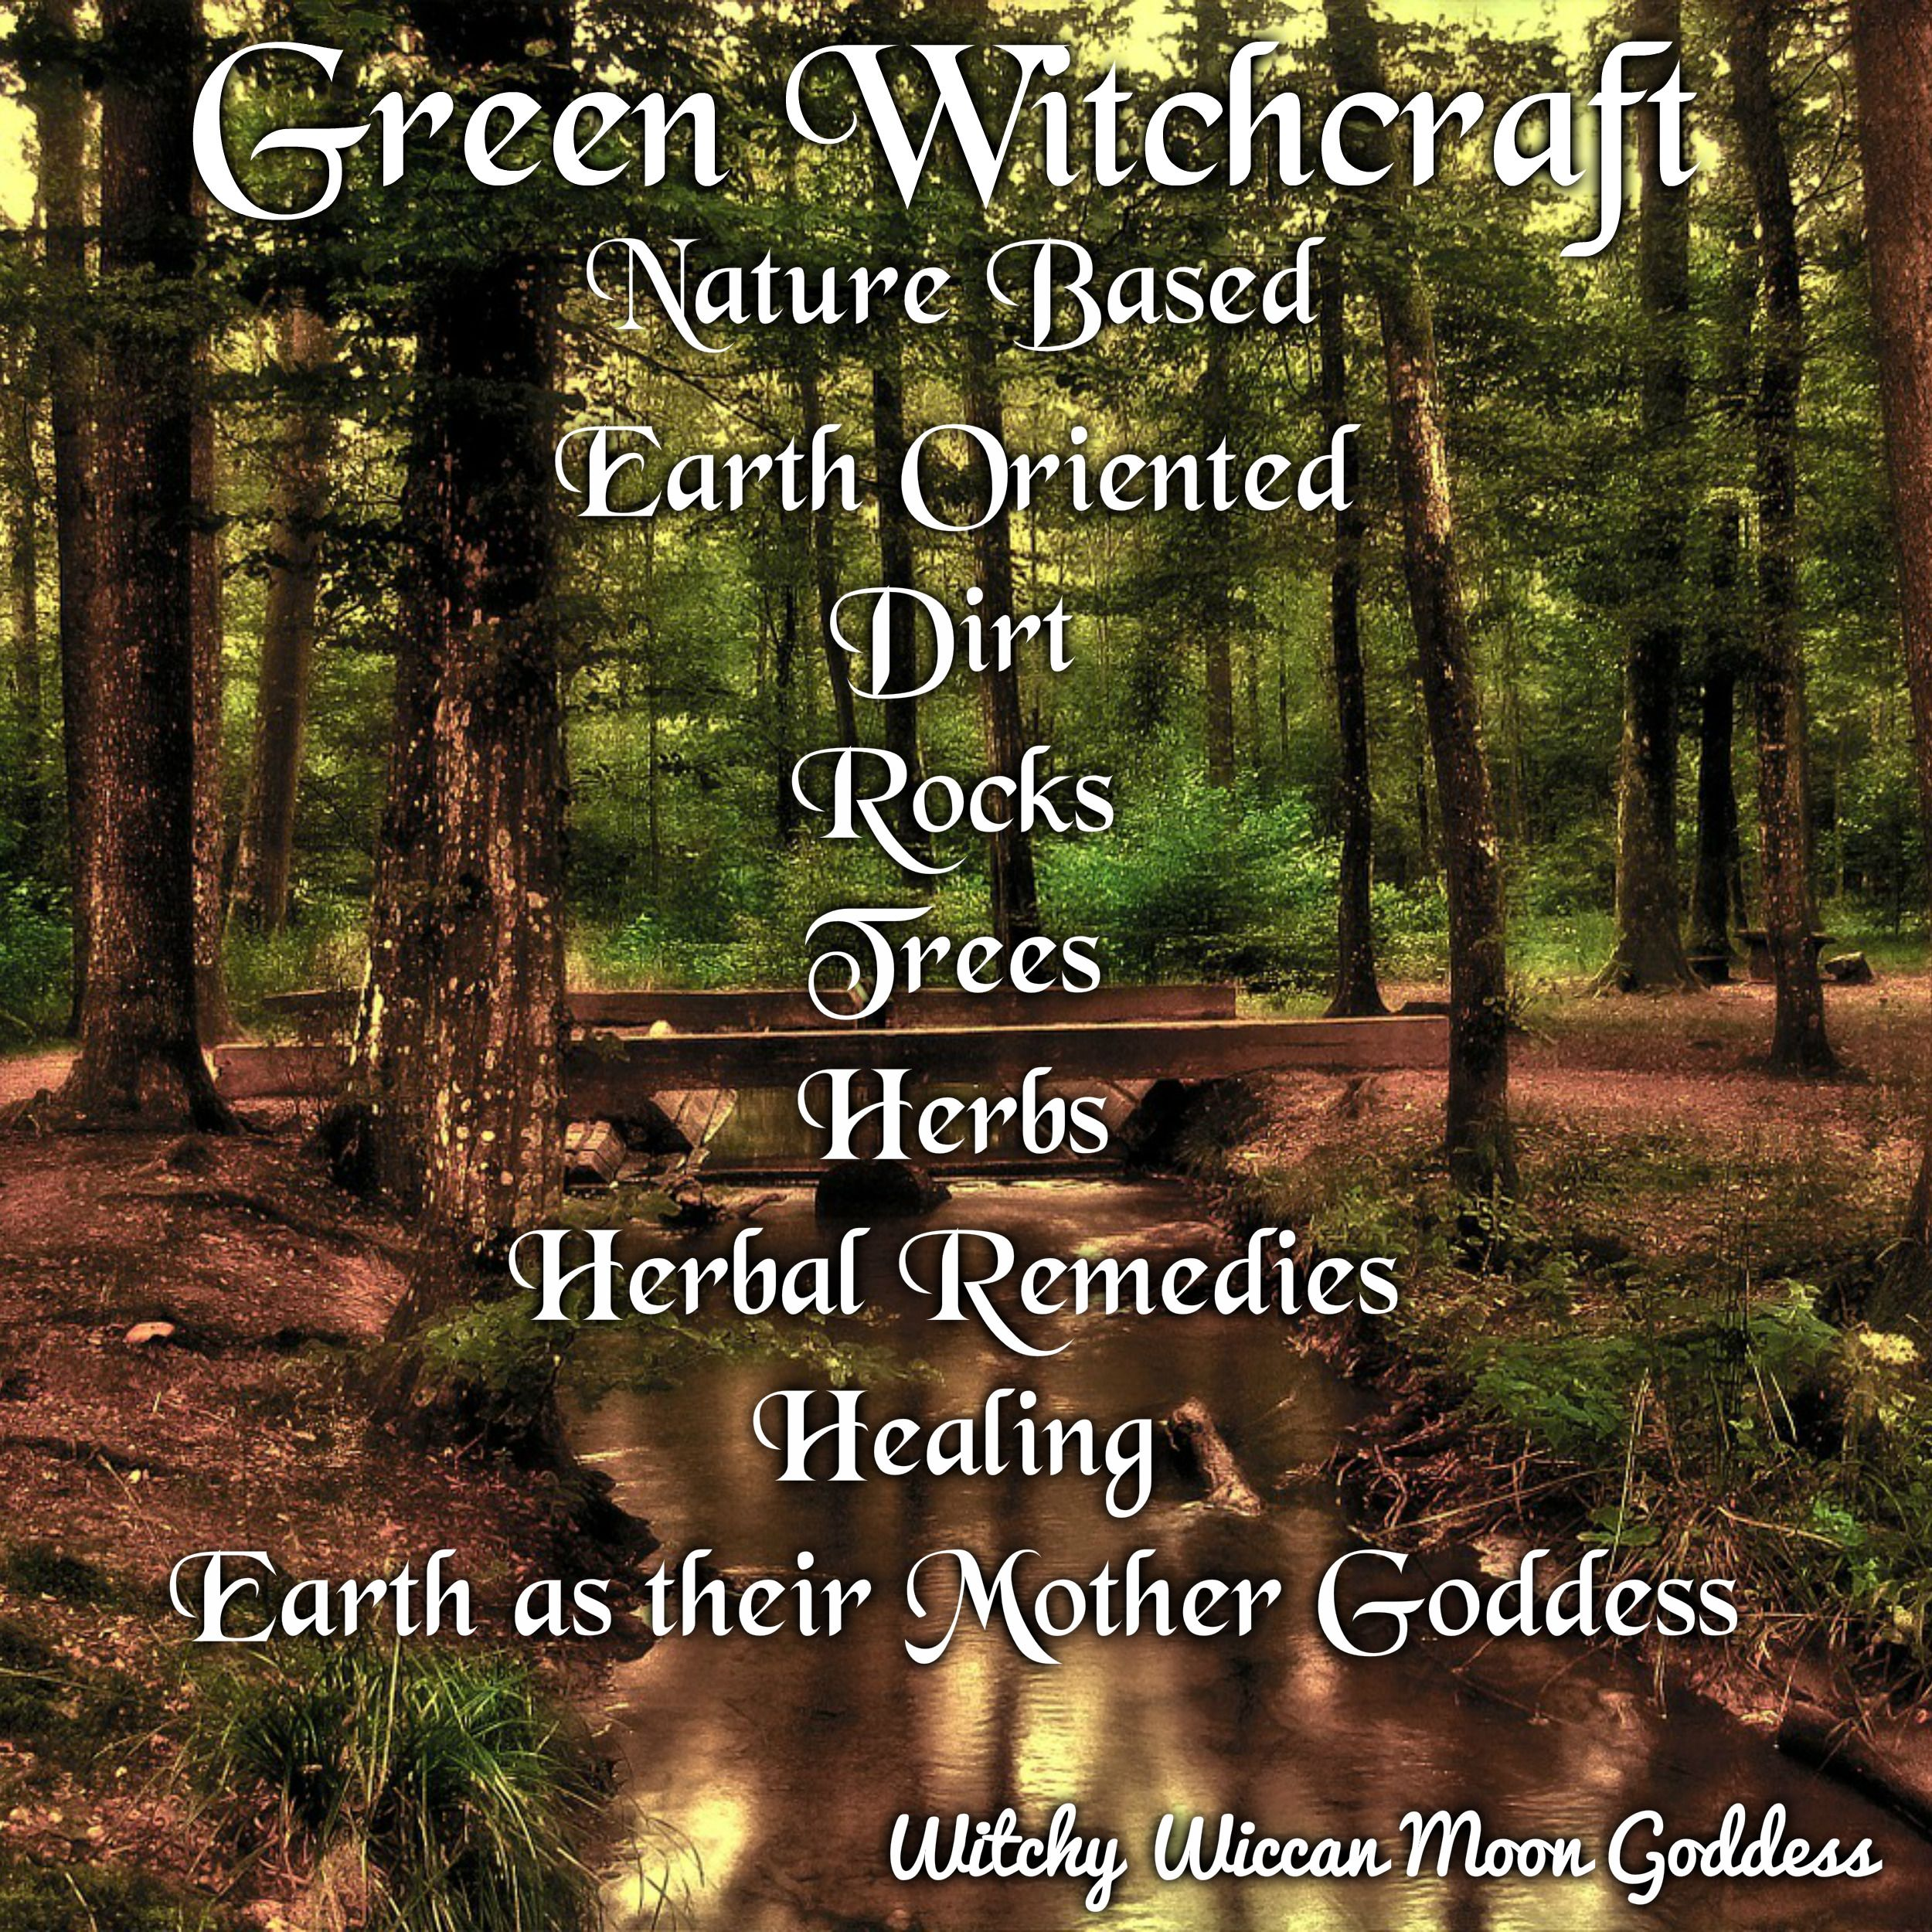 The Many Types of Witchcraft: Green Witchcraft #greenwitch #witchcraft #magick #healing #nature #greenwitchcraft